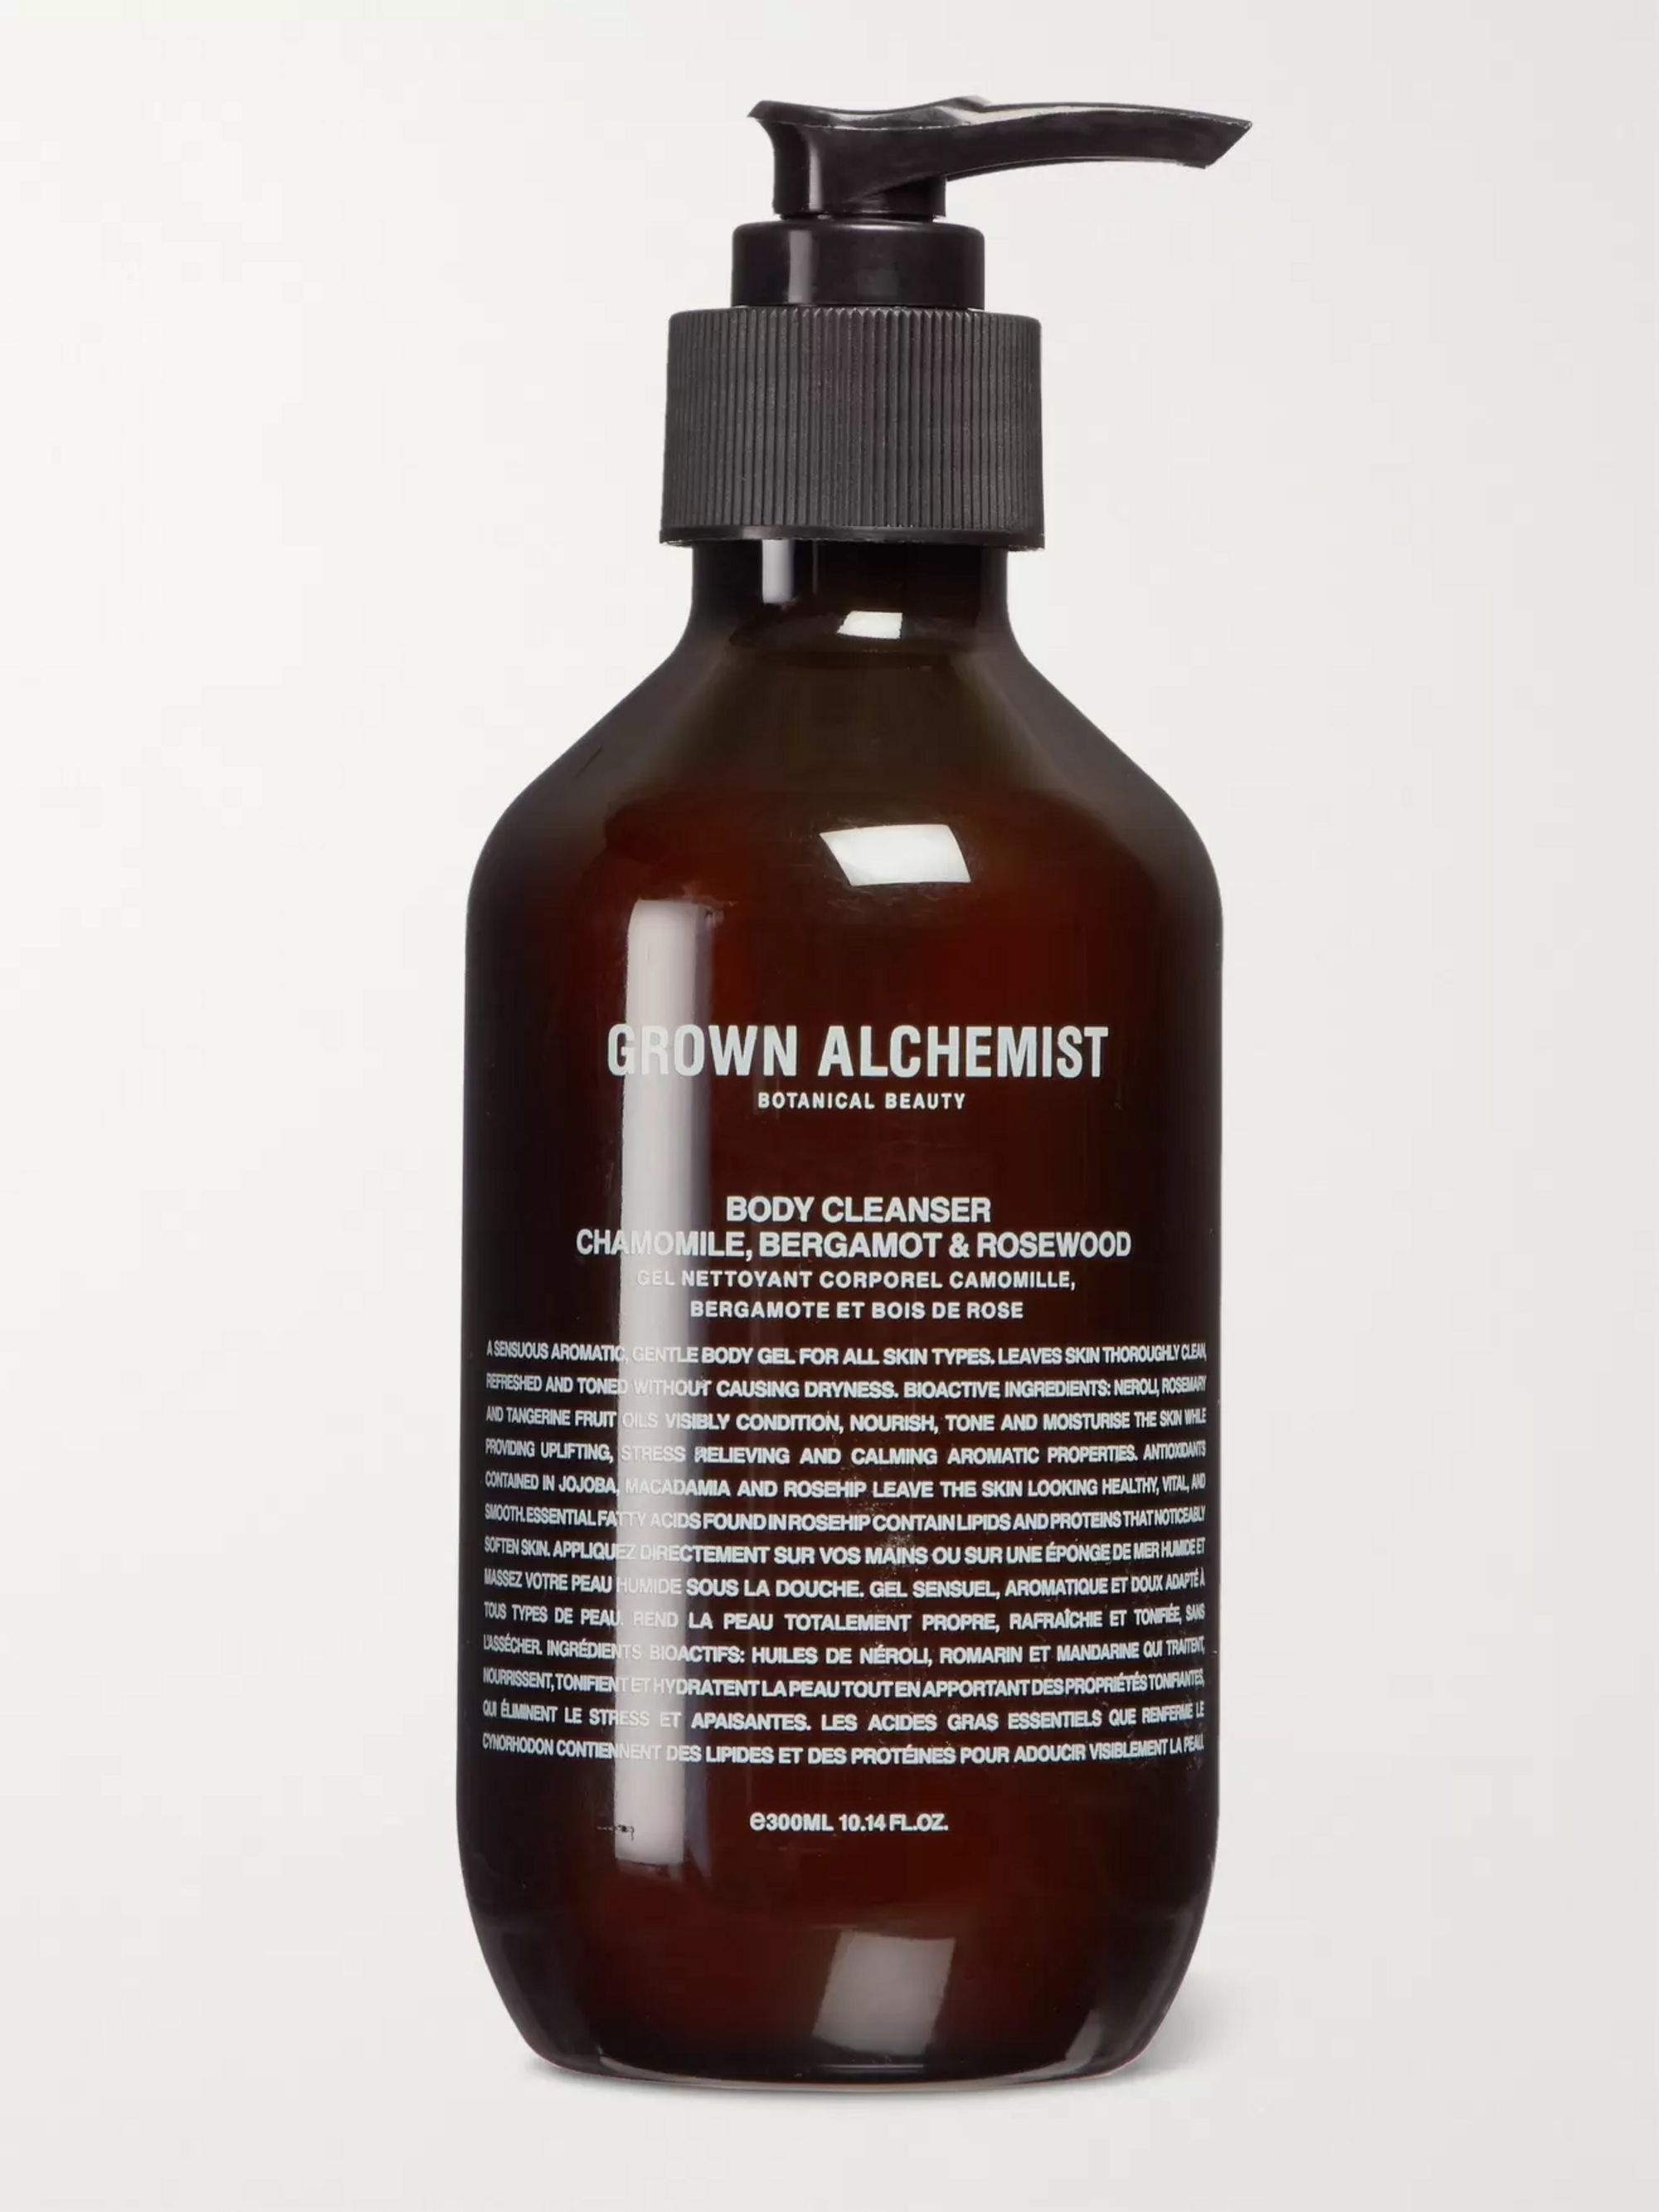 GROWN ALCHEMIST Chamomile, Bergamot & Rosewood Body Cleanser, 300ml